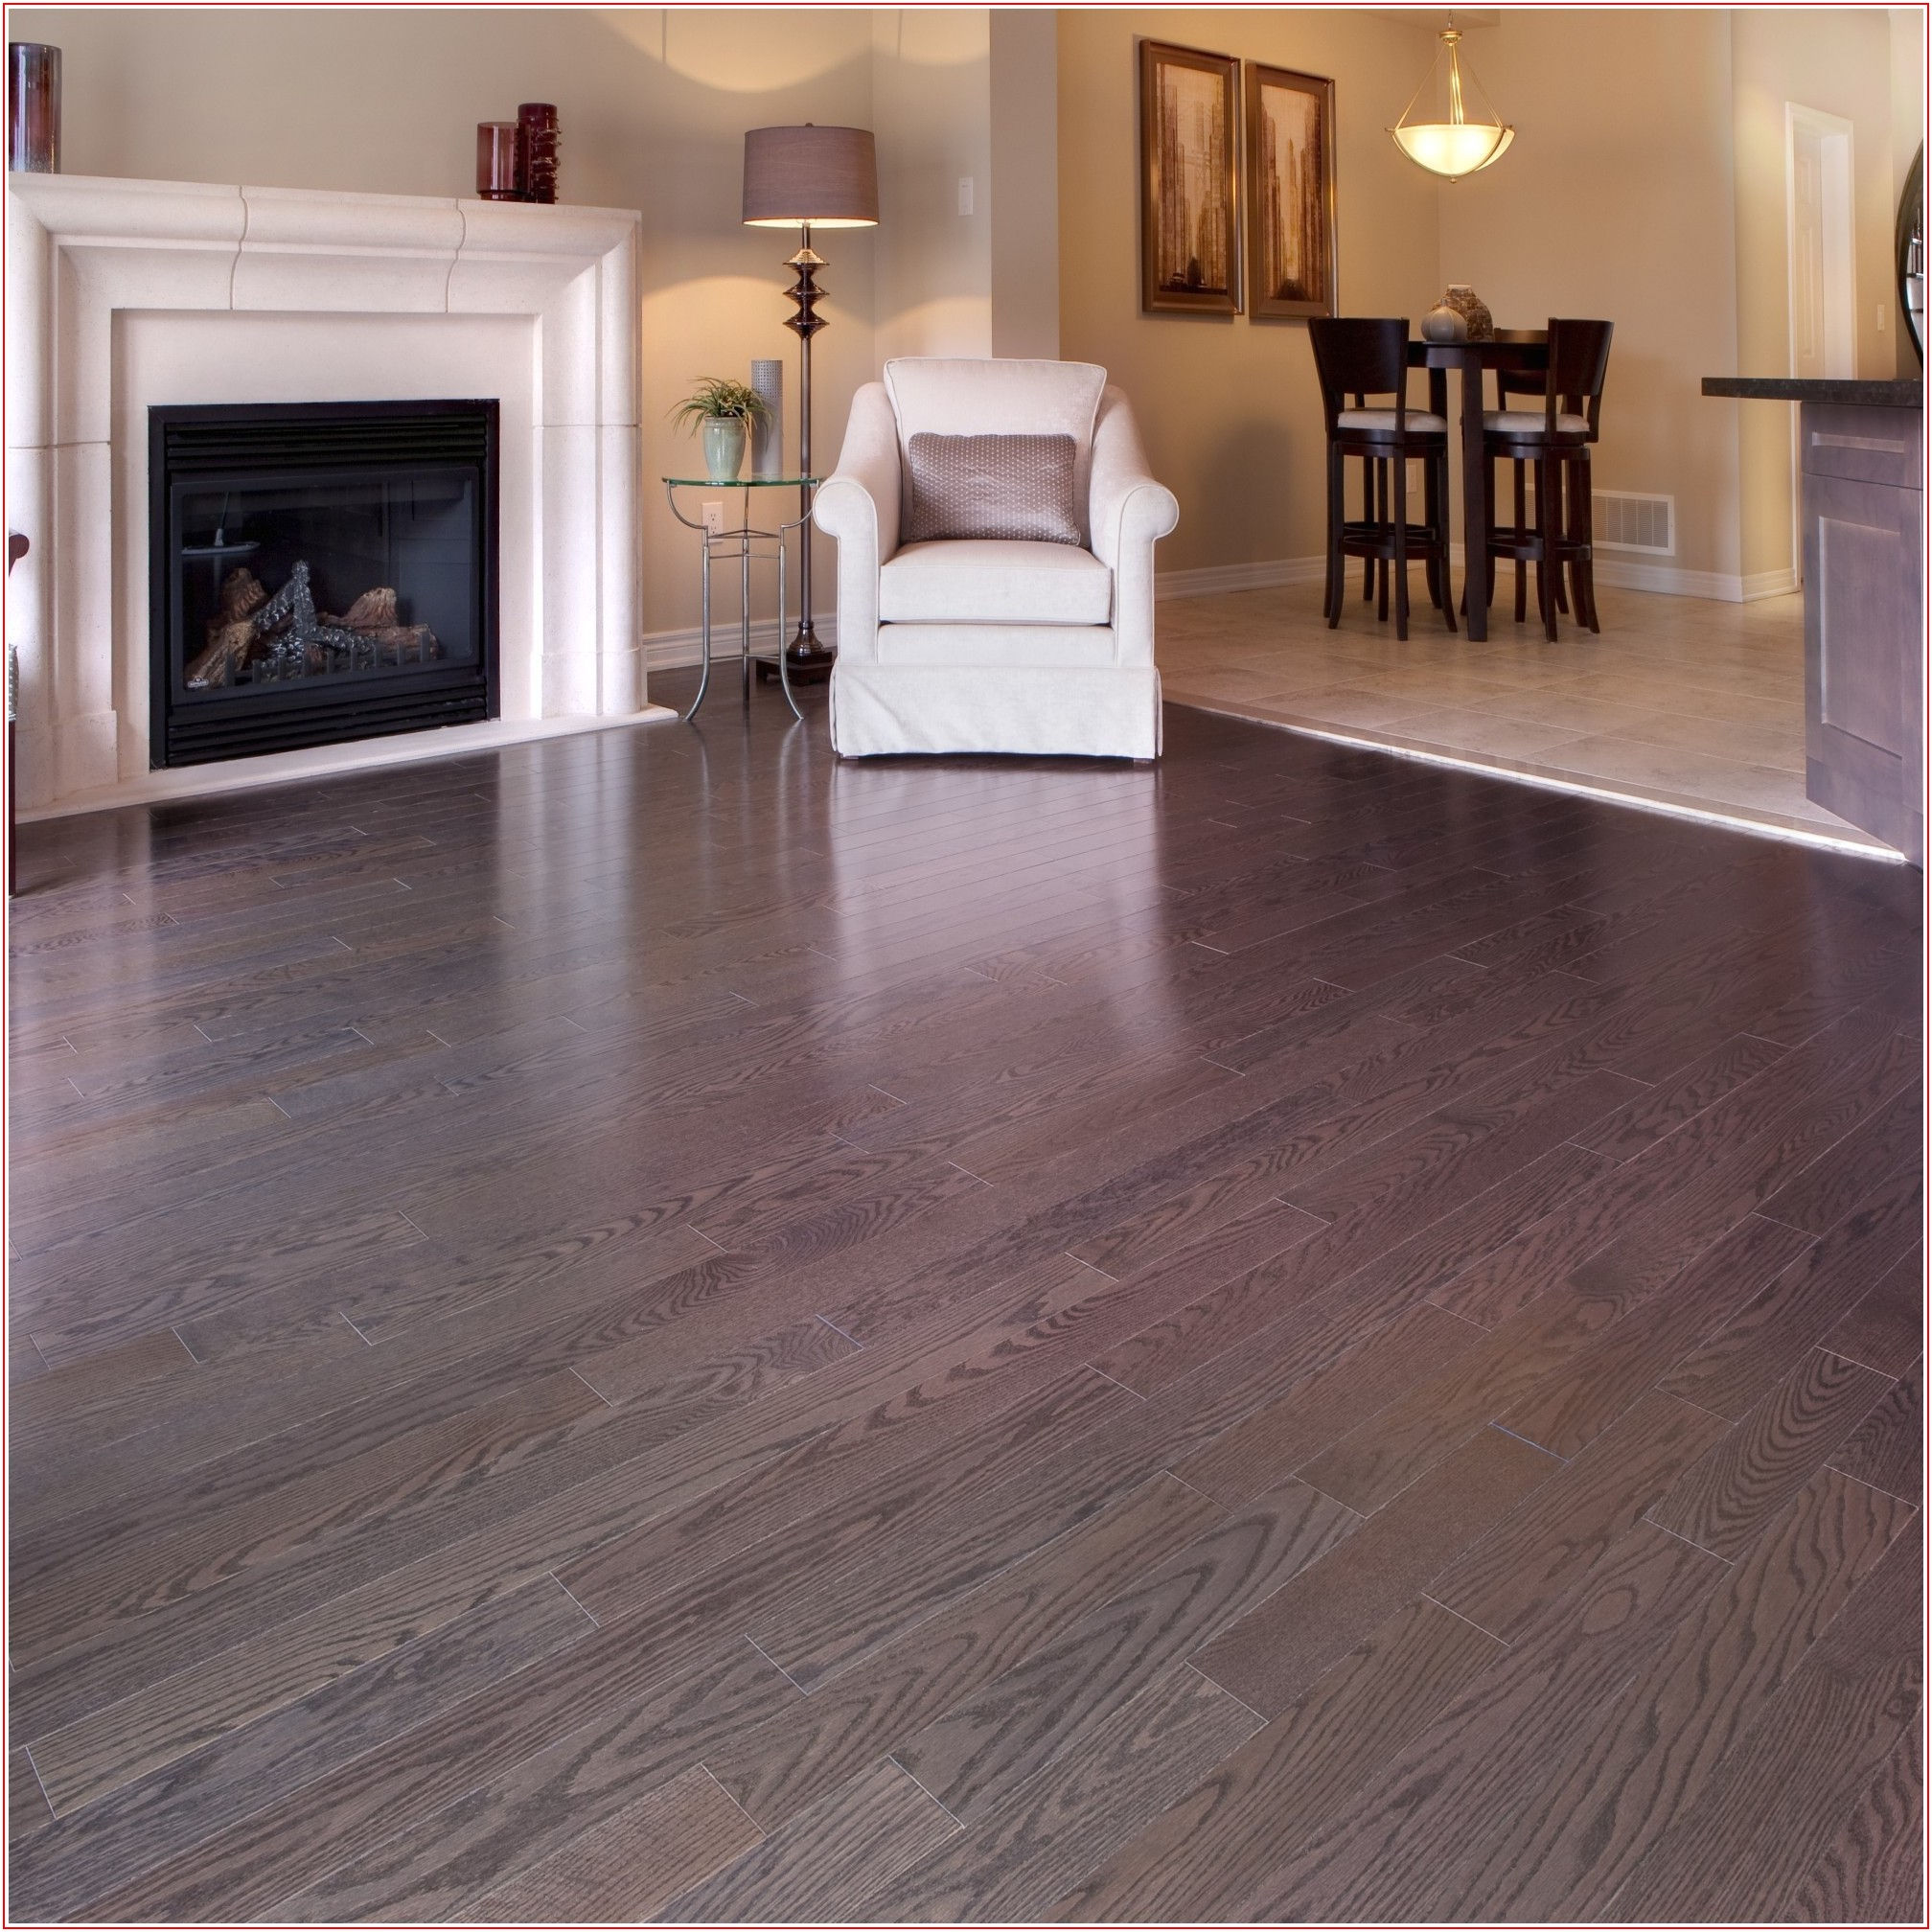 Harmonics Glueless Laminate Flooring Premium Oak